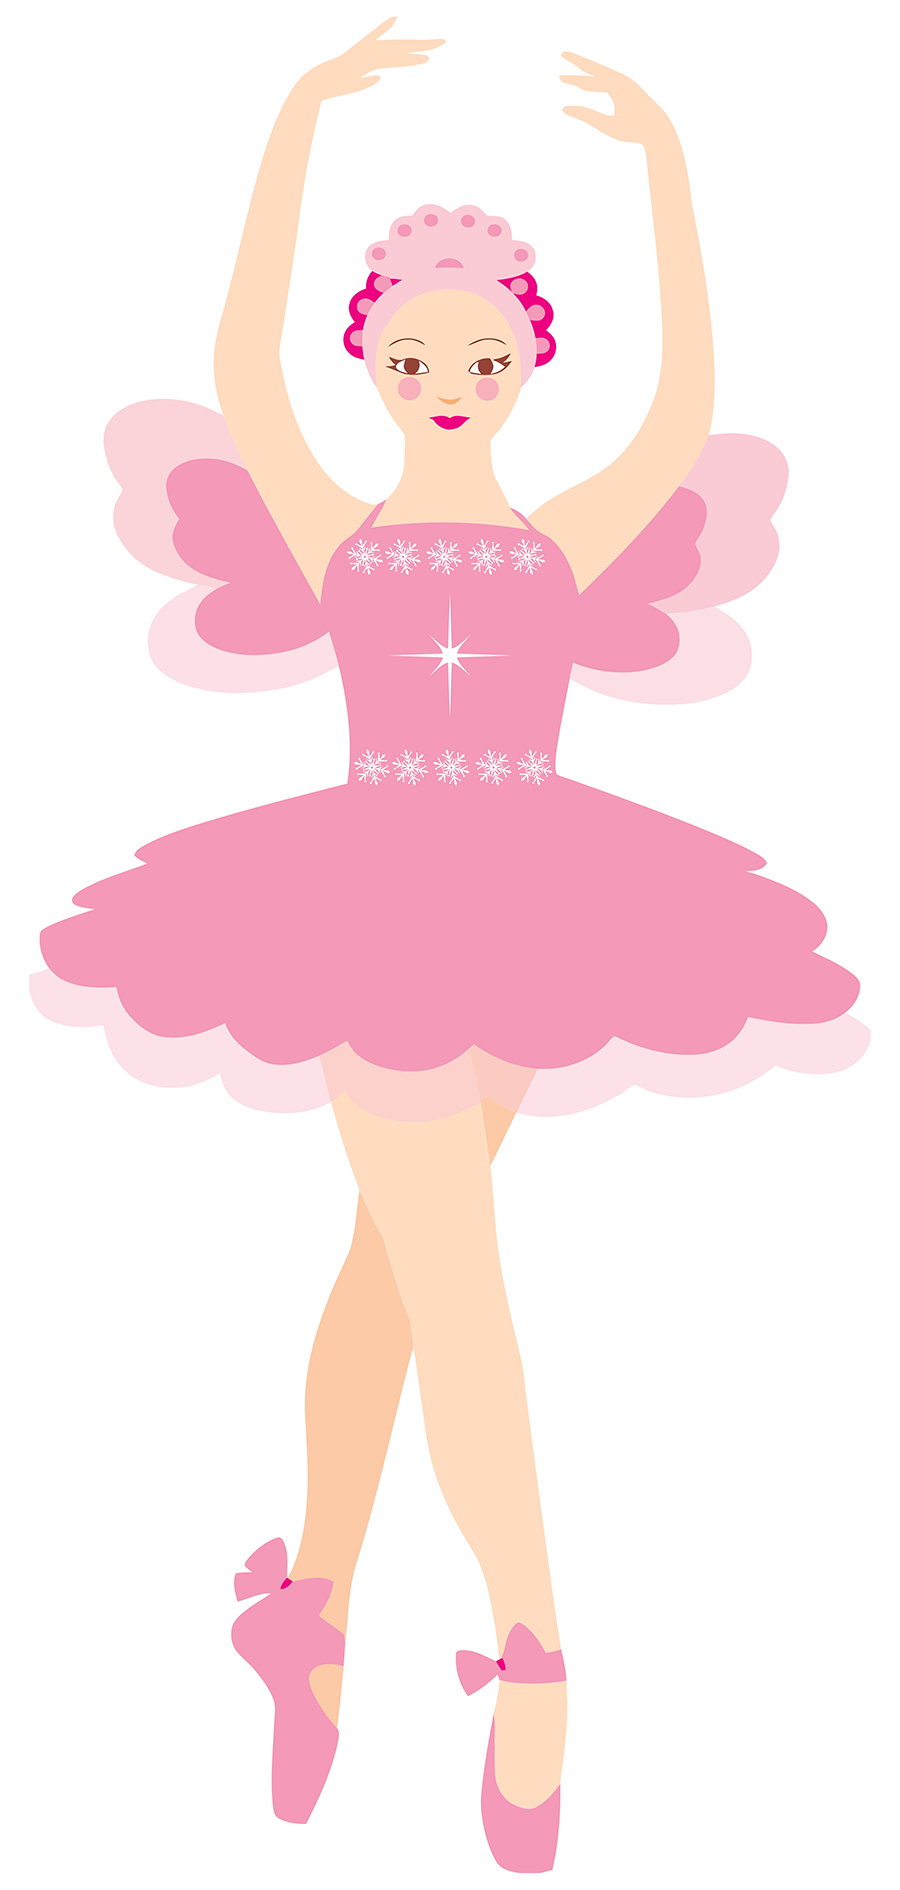 Sugarplum-Fairy - The Nutcracker Ballet PNG